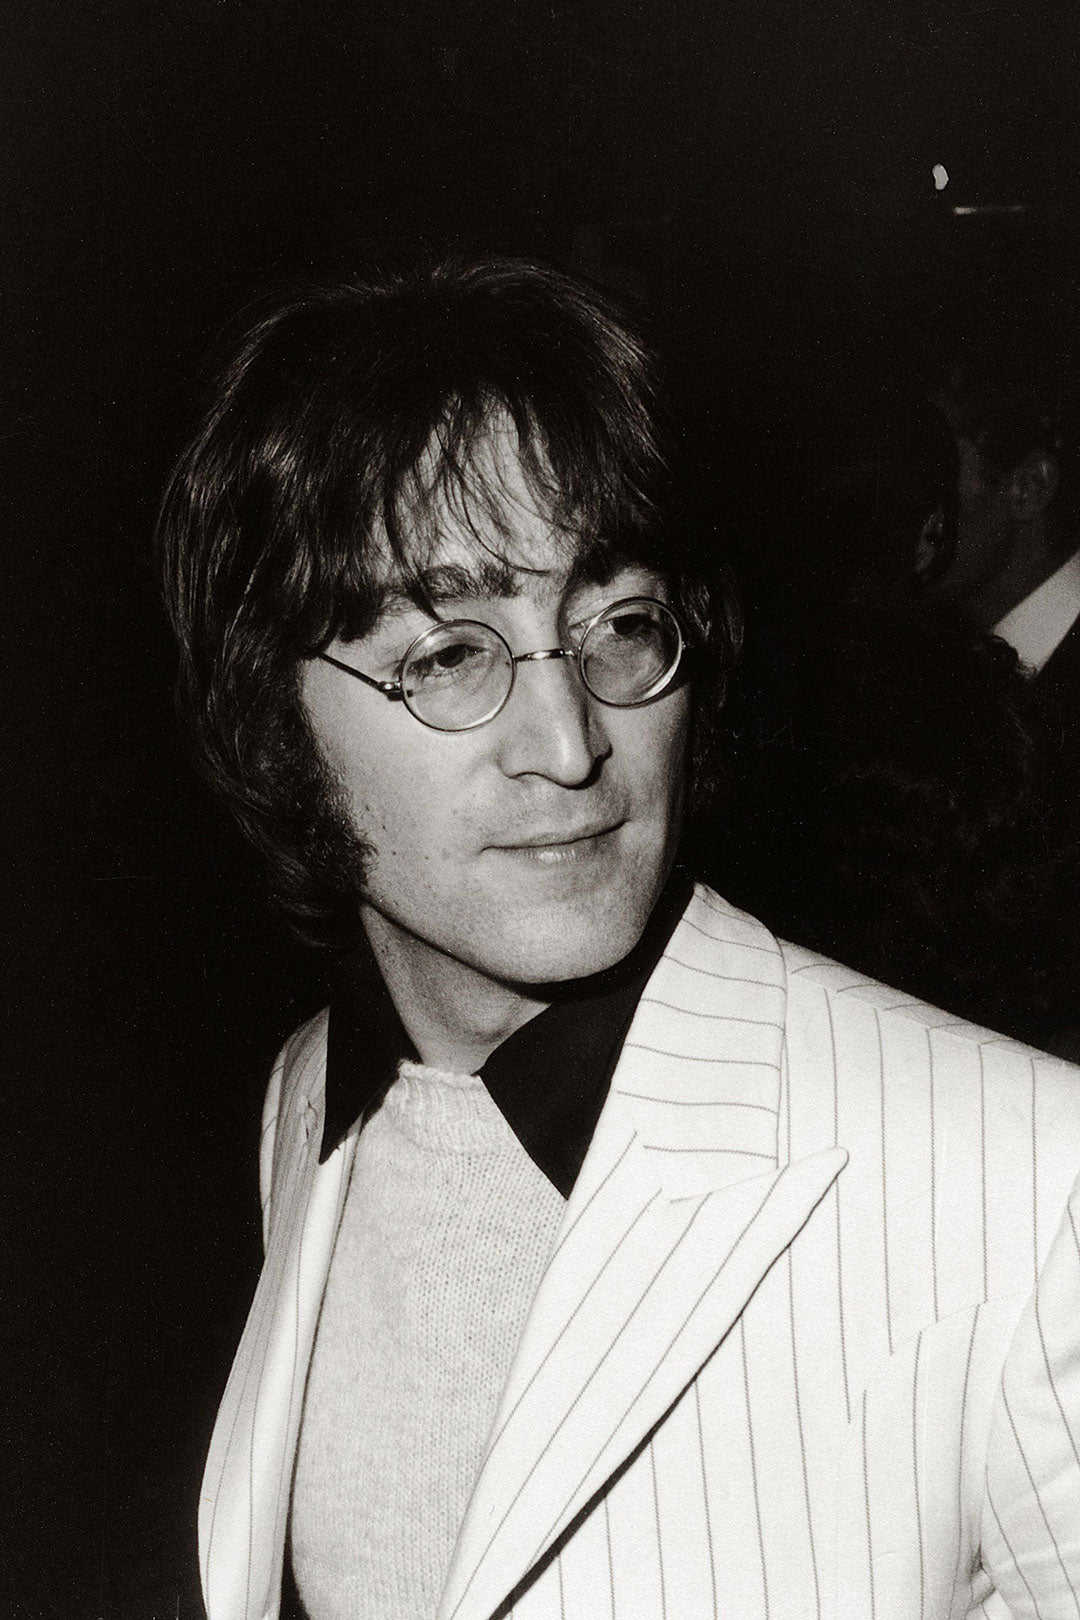 Music star John Lennon wearing pin striped white suit and round wire glasses frame